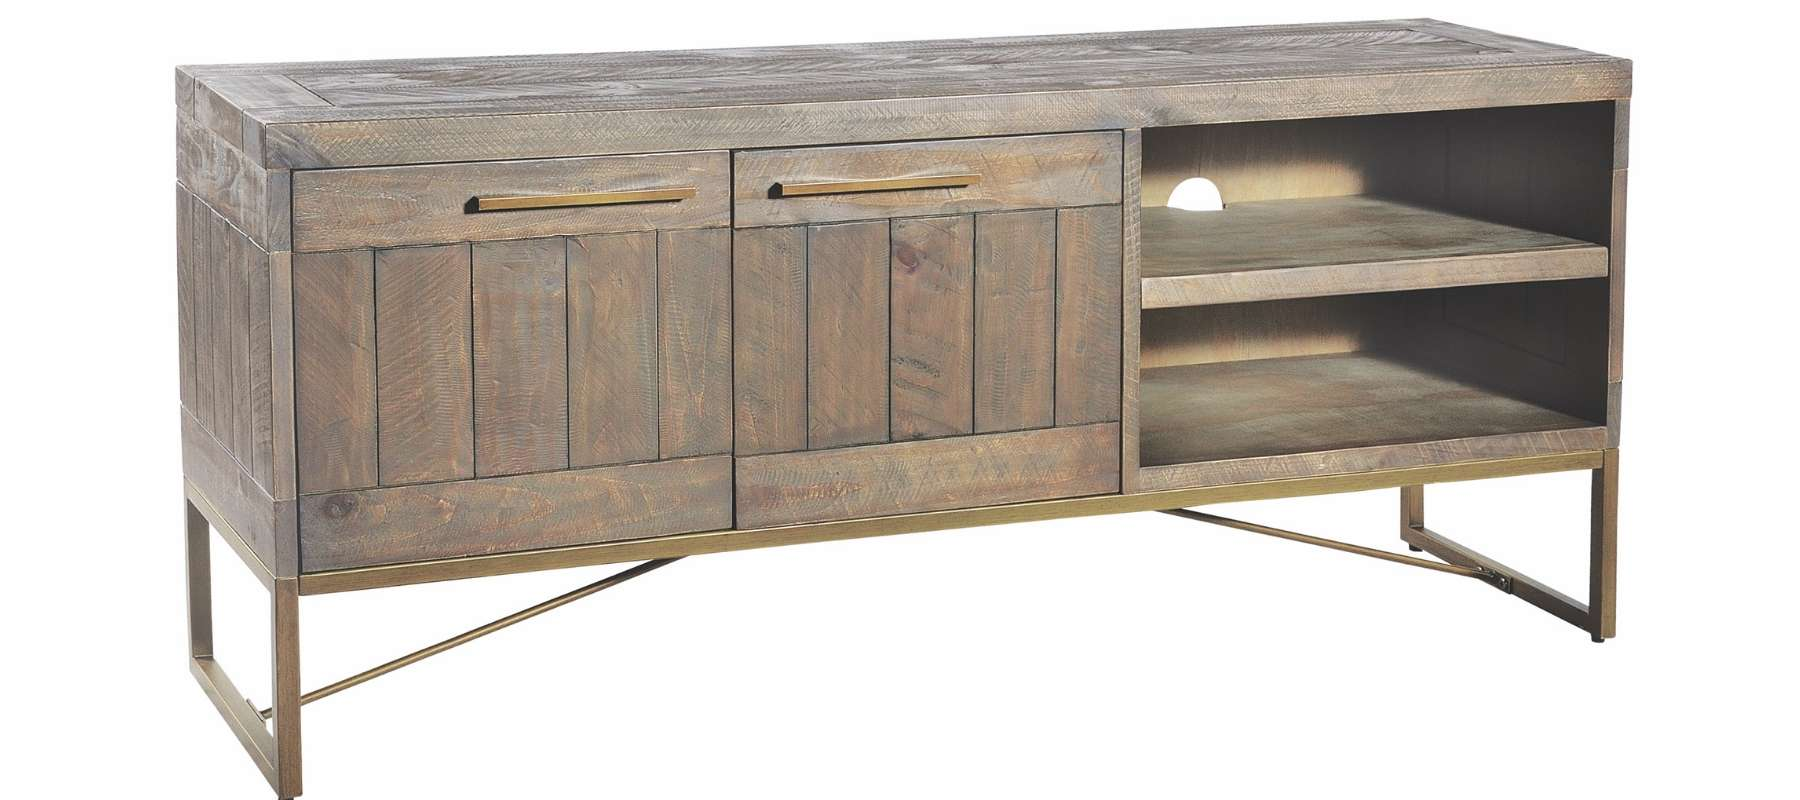 Tavistock Industrial Coffee table with shelves and cupboards